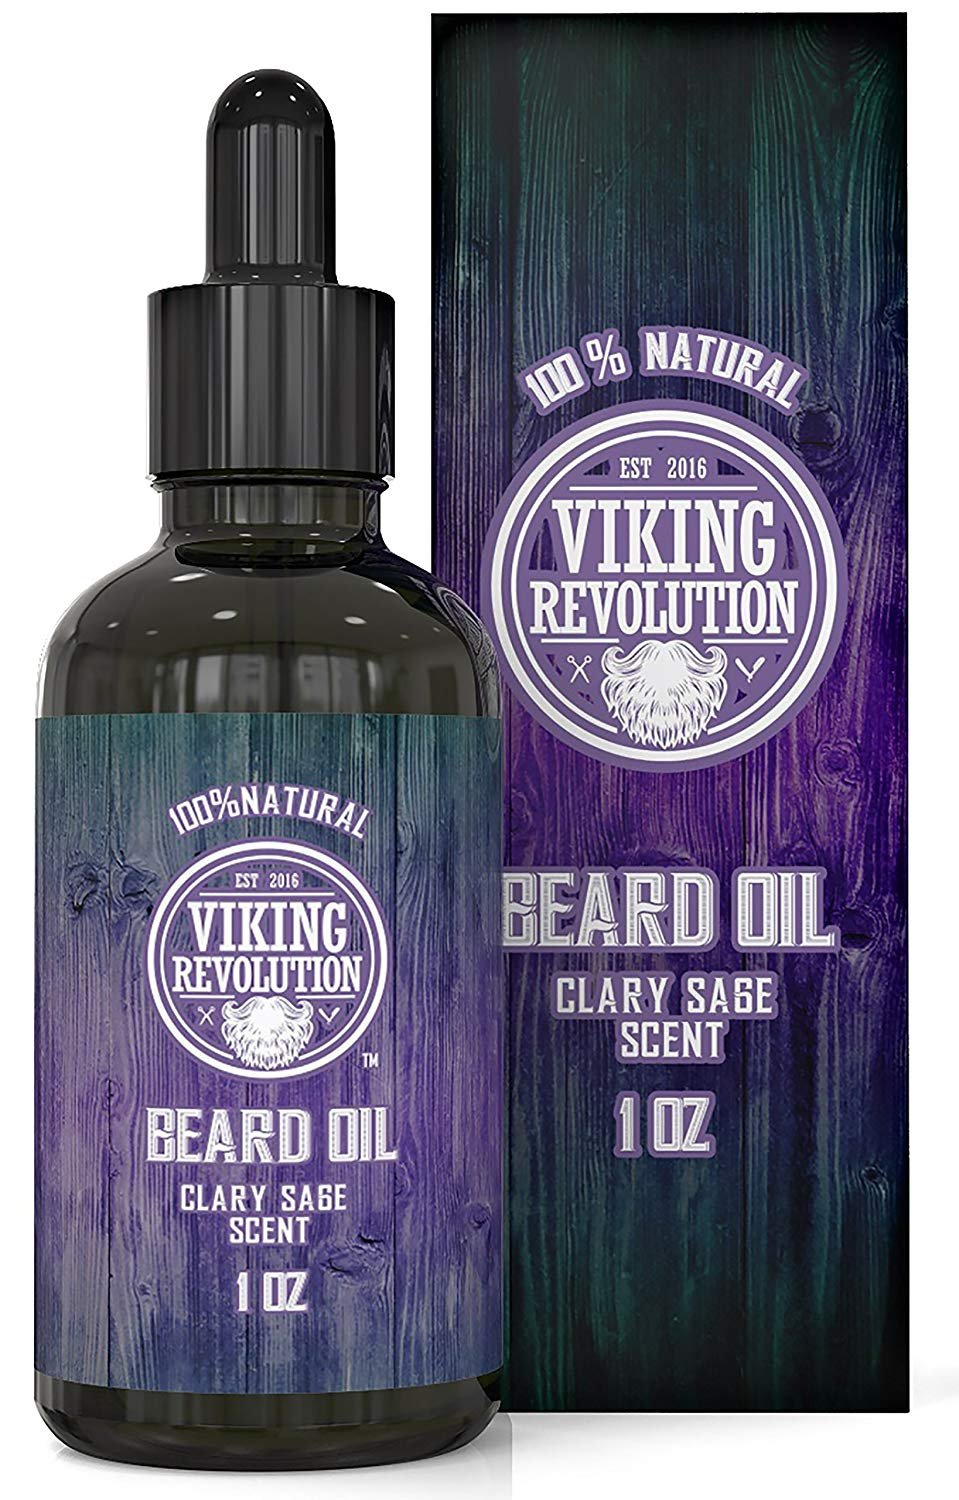 BEST DEAL Beard Oil Conditioner - All Natural Clary Sage Scent with Organic Argan & Jojoba Oils - Promotes Beard Growth - Softens & Strengthens Beards and Mustaches for Men … Viking Revolution